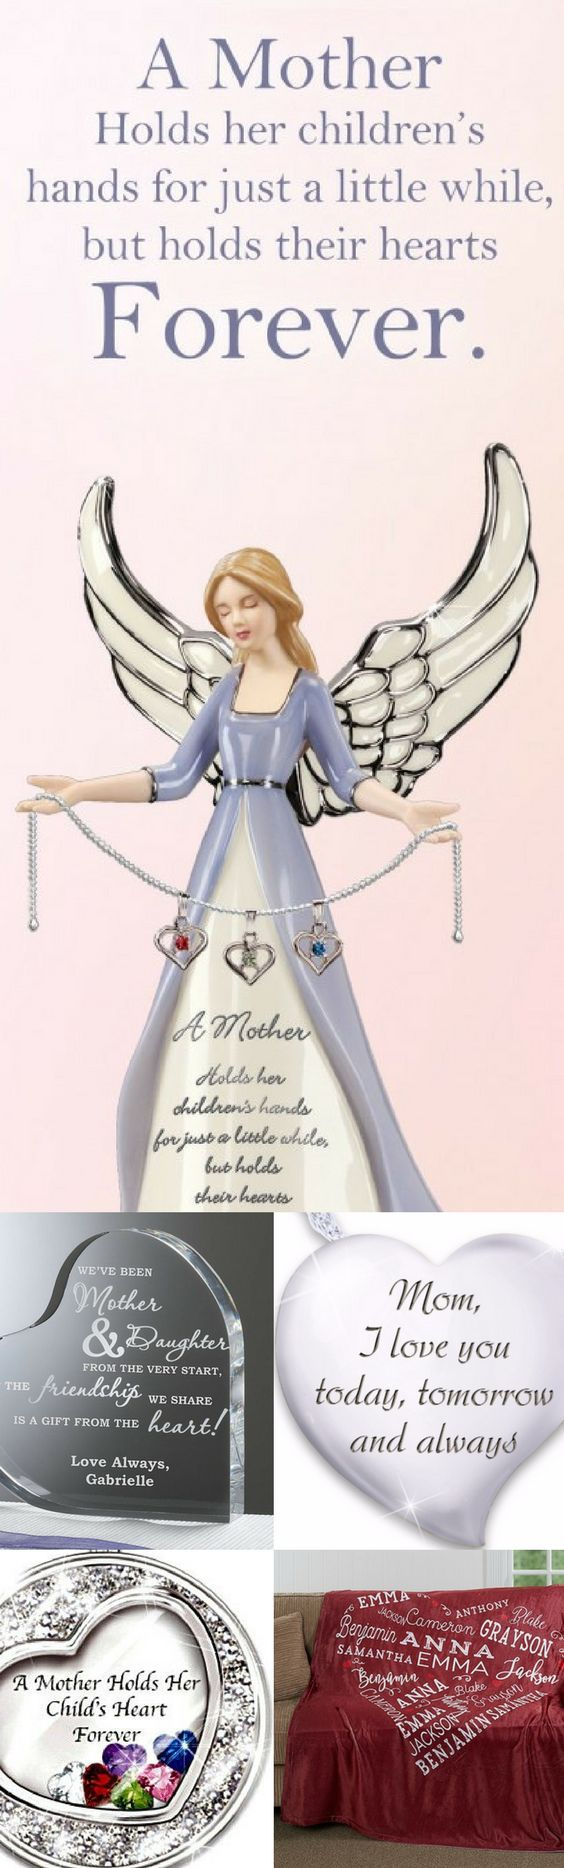 Best Christmas Gifts For New Moms Part - 30: Sentimental Gifts For Mom - Top 20 Meaningful Gift Ideas For Mothers